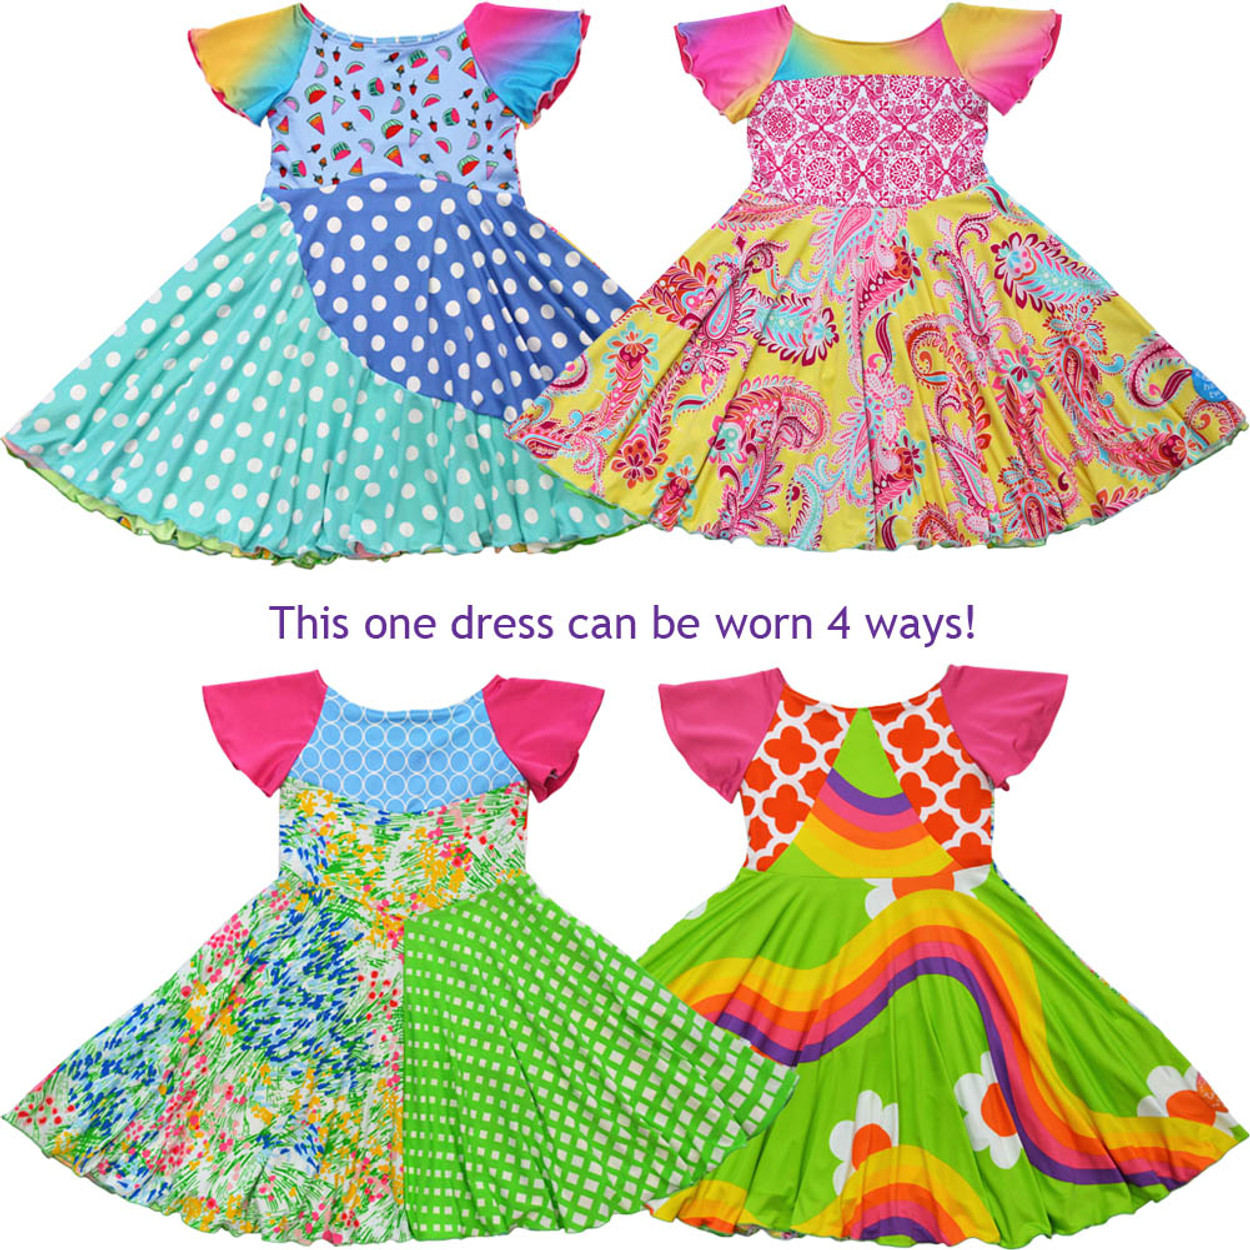 d328a8a12 Twirly Girl Girls Unique 4 Way Reversible Dress Colorful Soft Pretty USA  Made